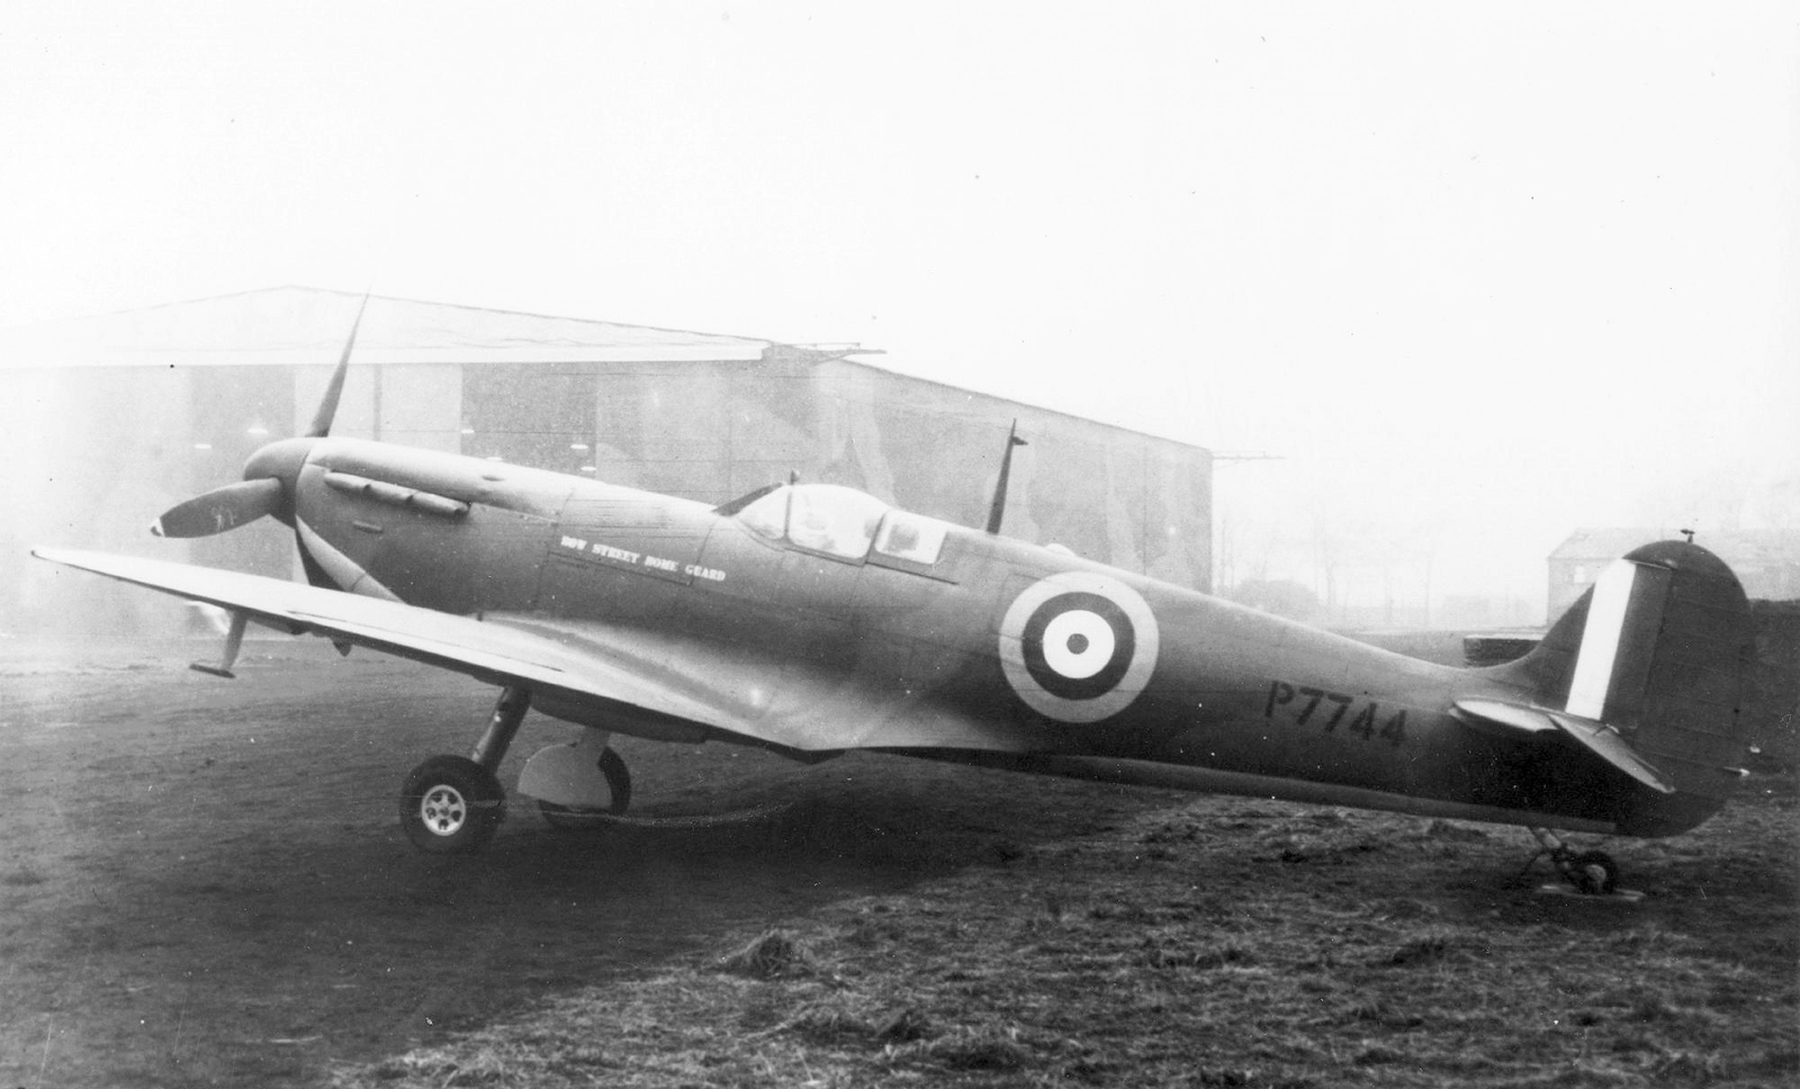 Factory fresh Spitfire MkIIa RAF P7744 first flew with 66Sqn till Mar 1941 then numerous Sqns till 1945 01